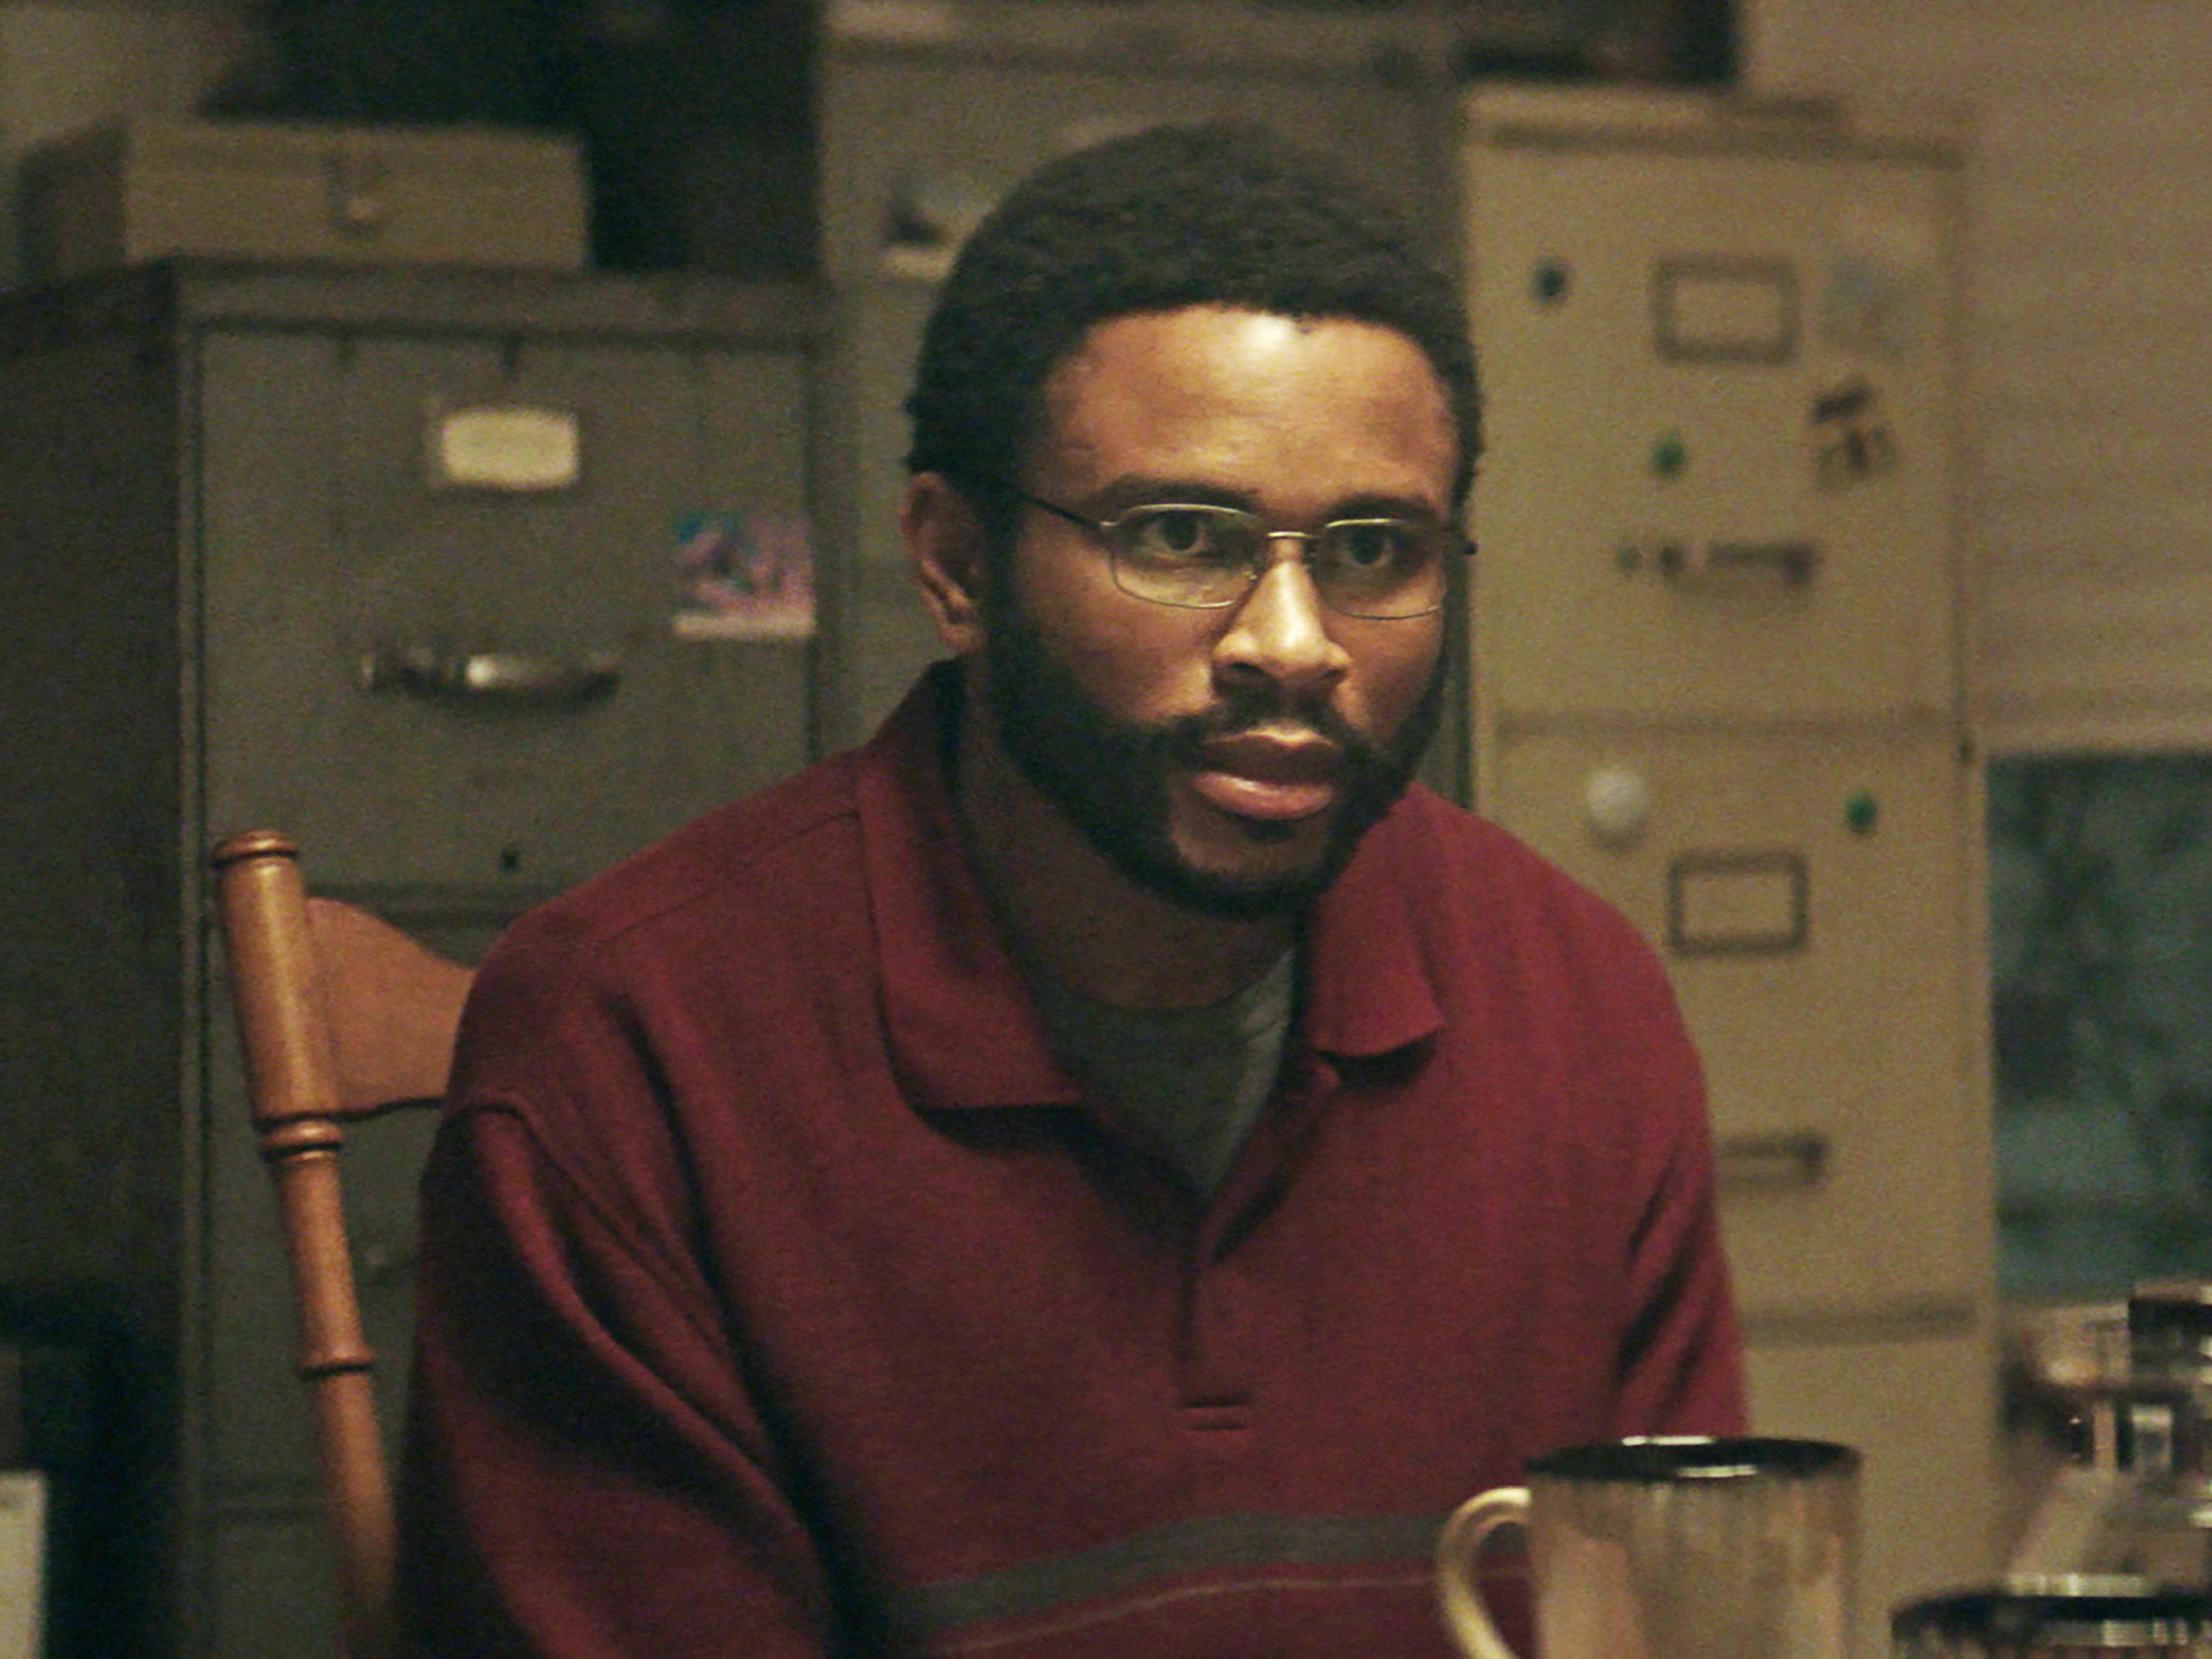 Crown heights a story of wrongful conviction that plays it too safe nnamdi asomugha as carl king in crown heights malvernweather Image collections